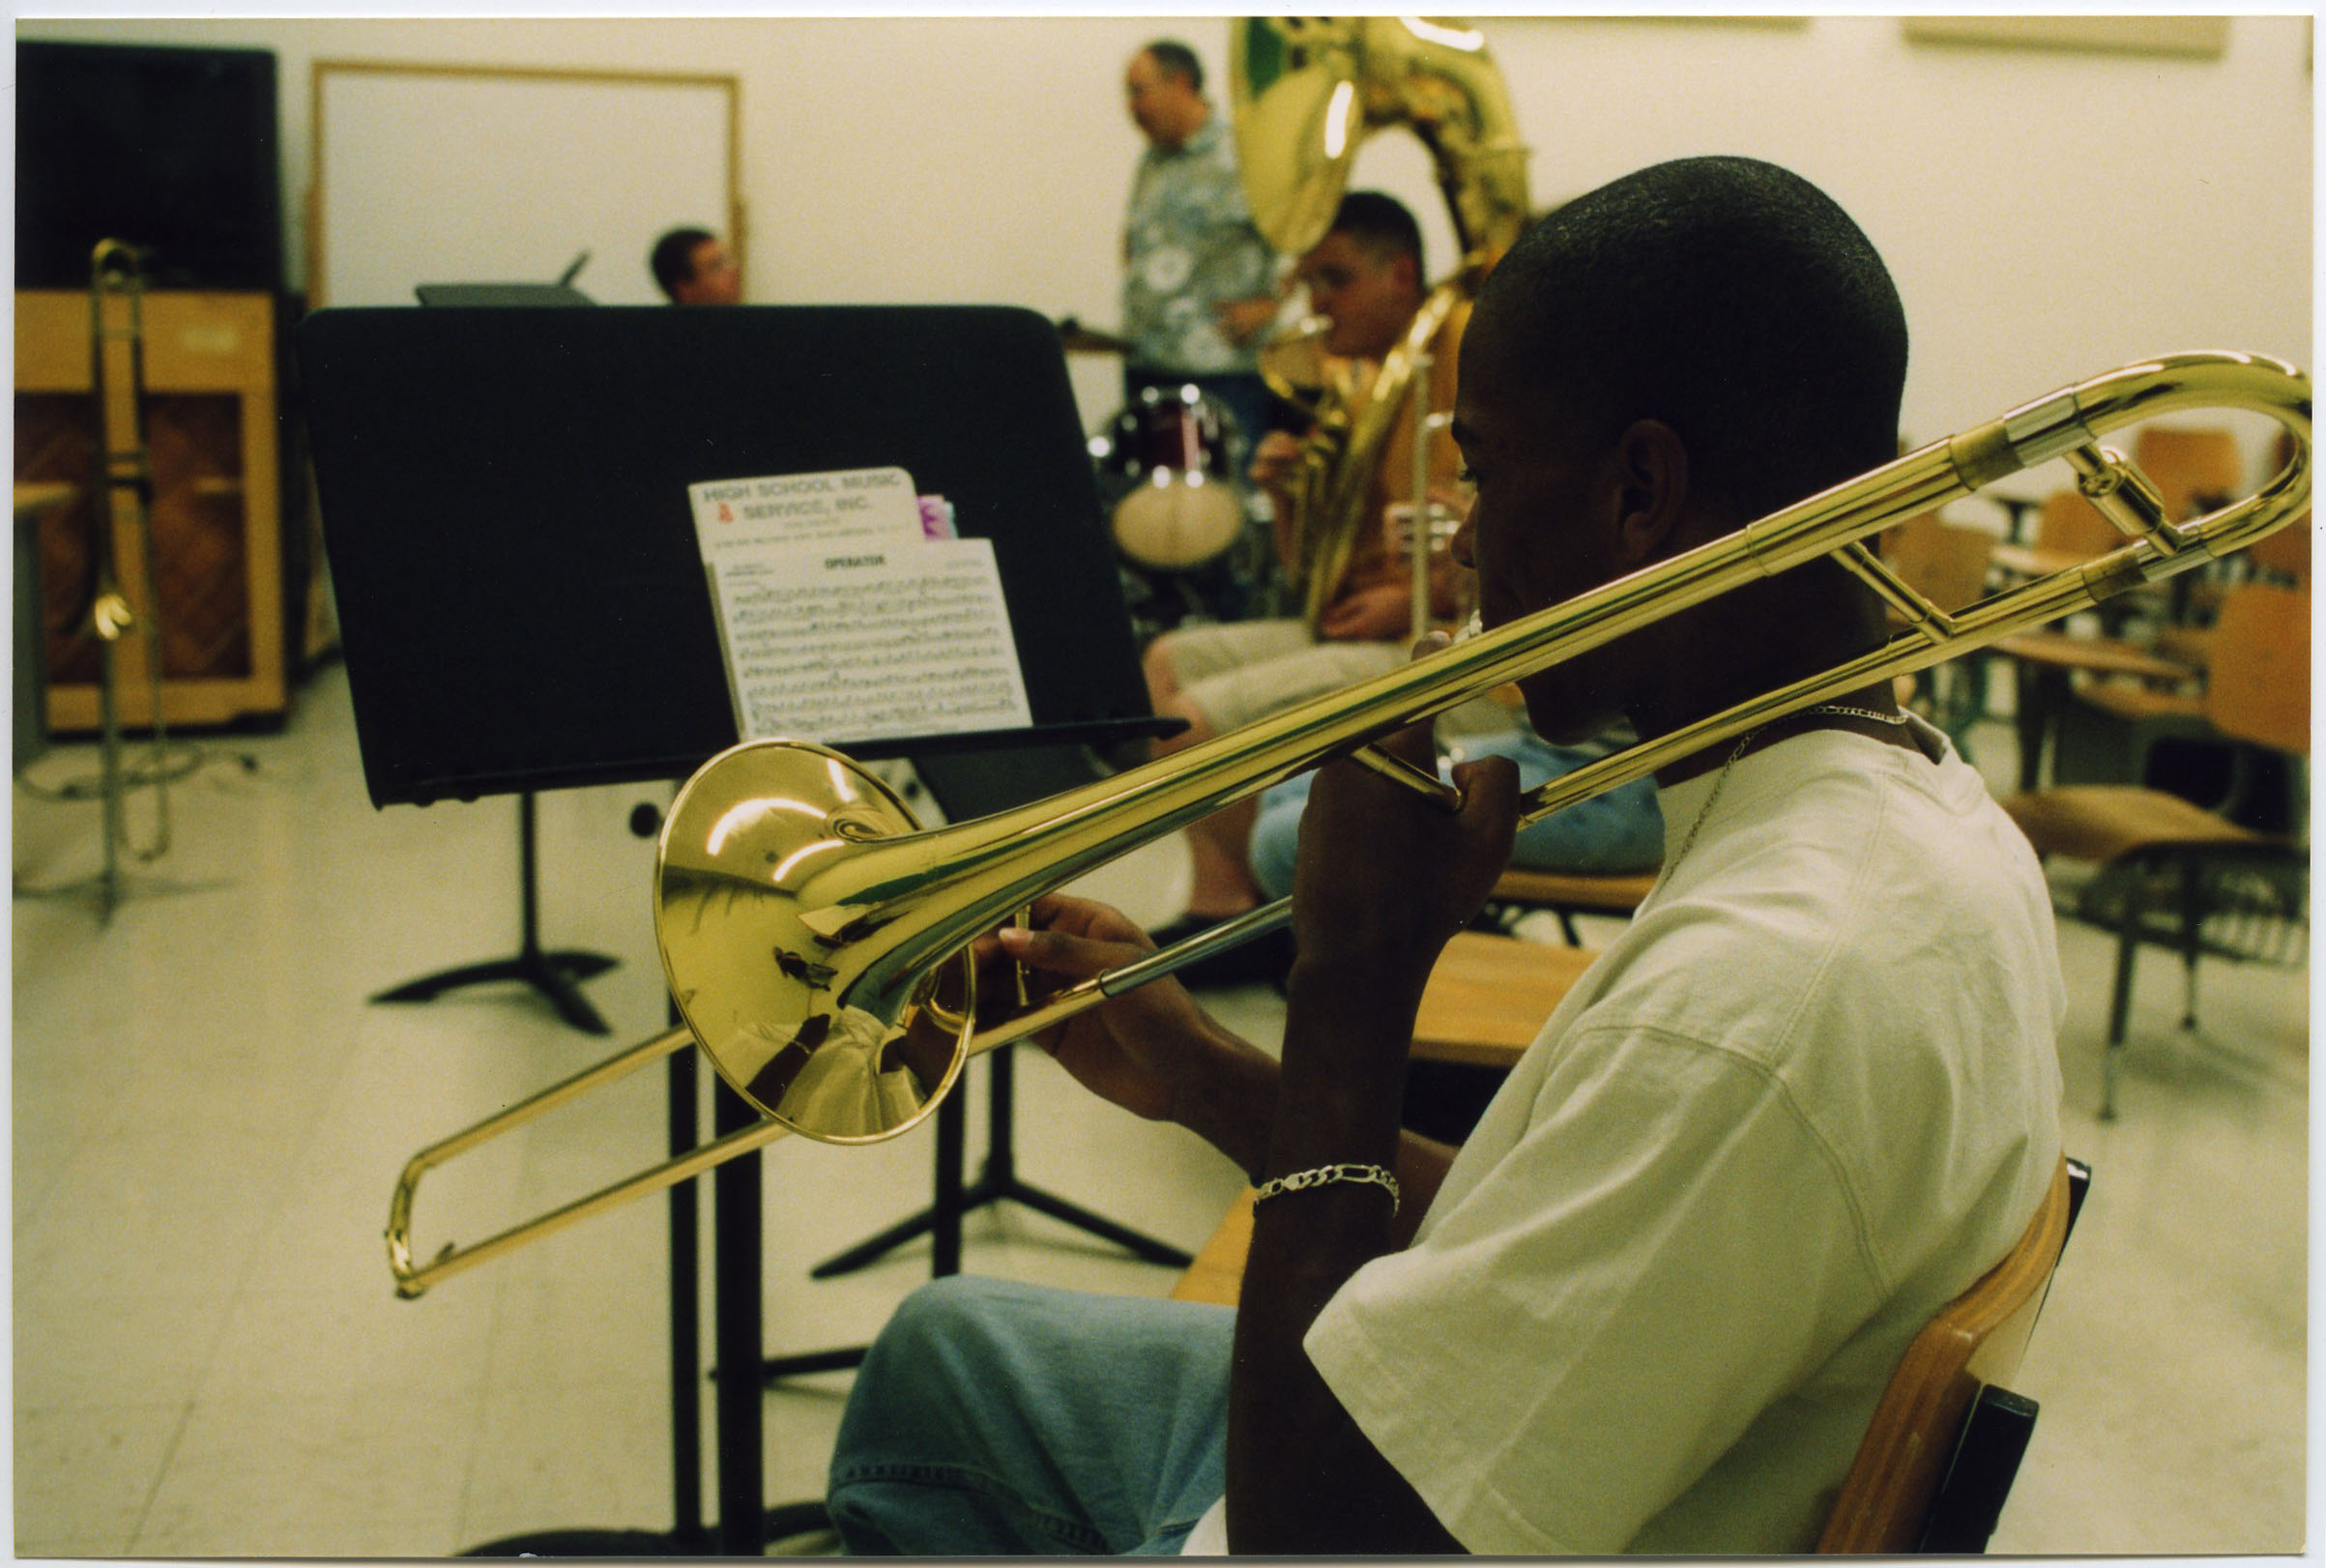 Band Practice, 2003